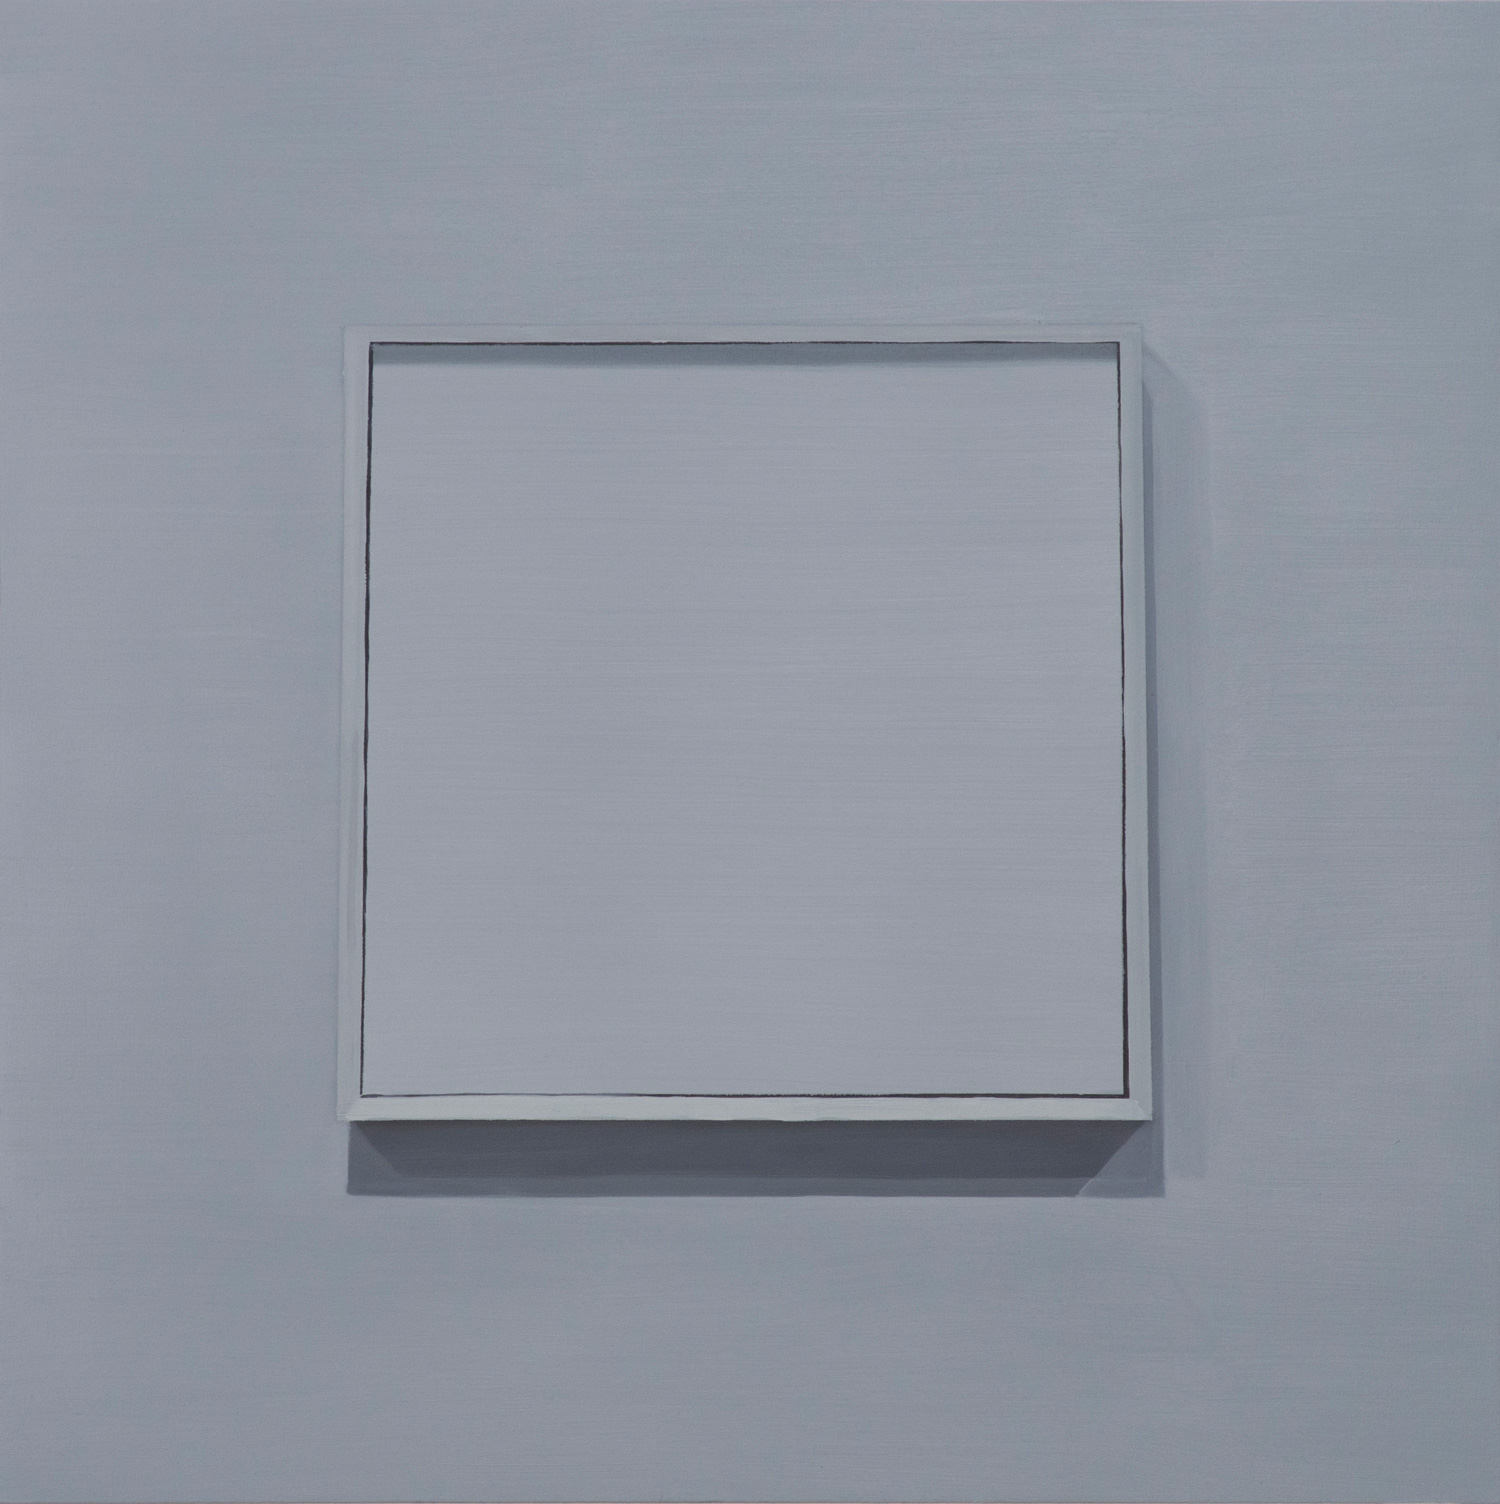 Suprematist Non-Objective Composition (1915), 2015, oil on canvas mounted on panel, 80x80cm